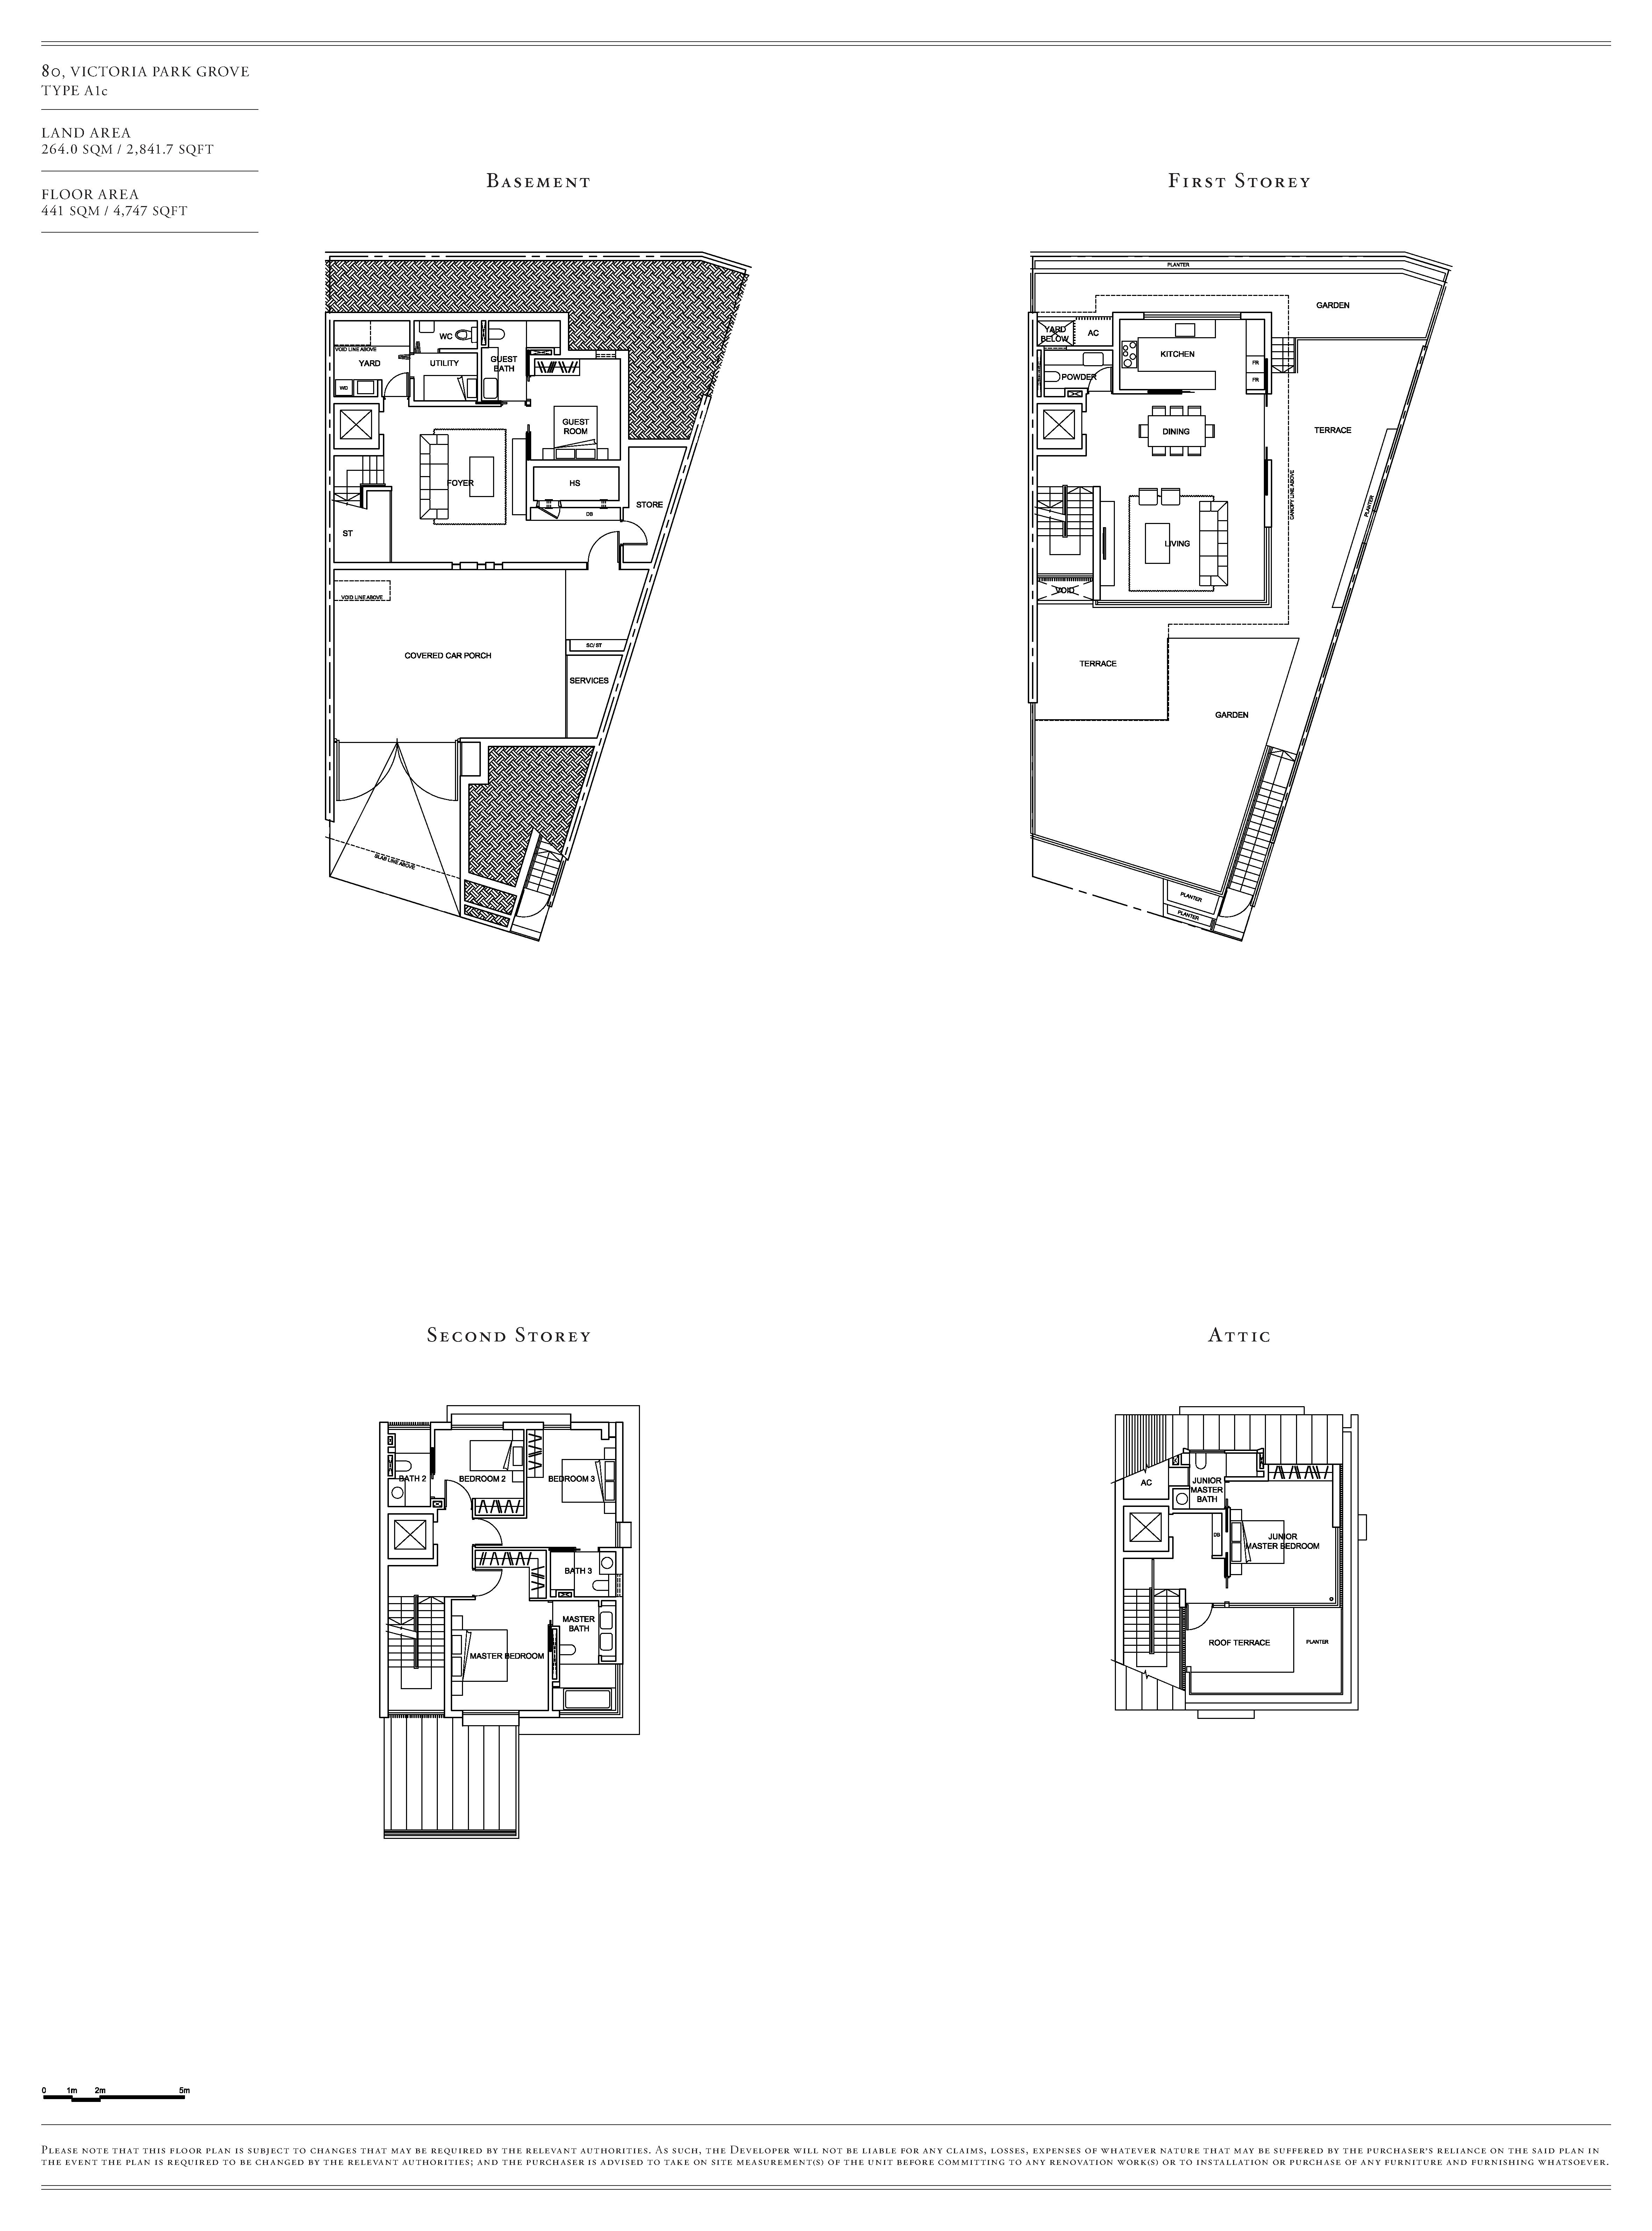 Victoria Park Villas House 80 Type A1c Floor Plans